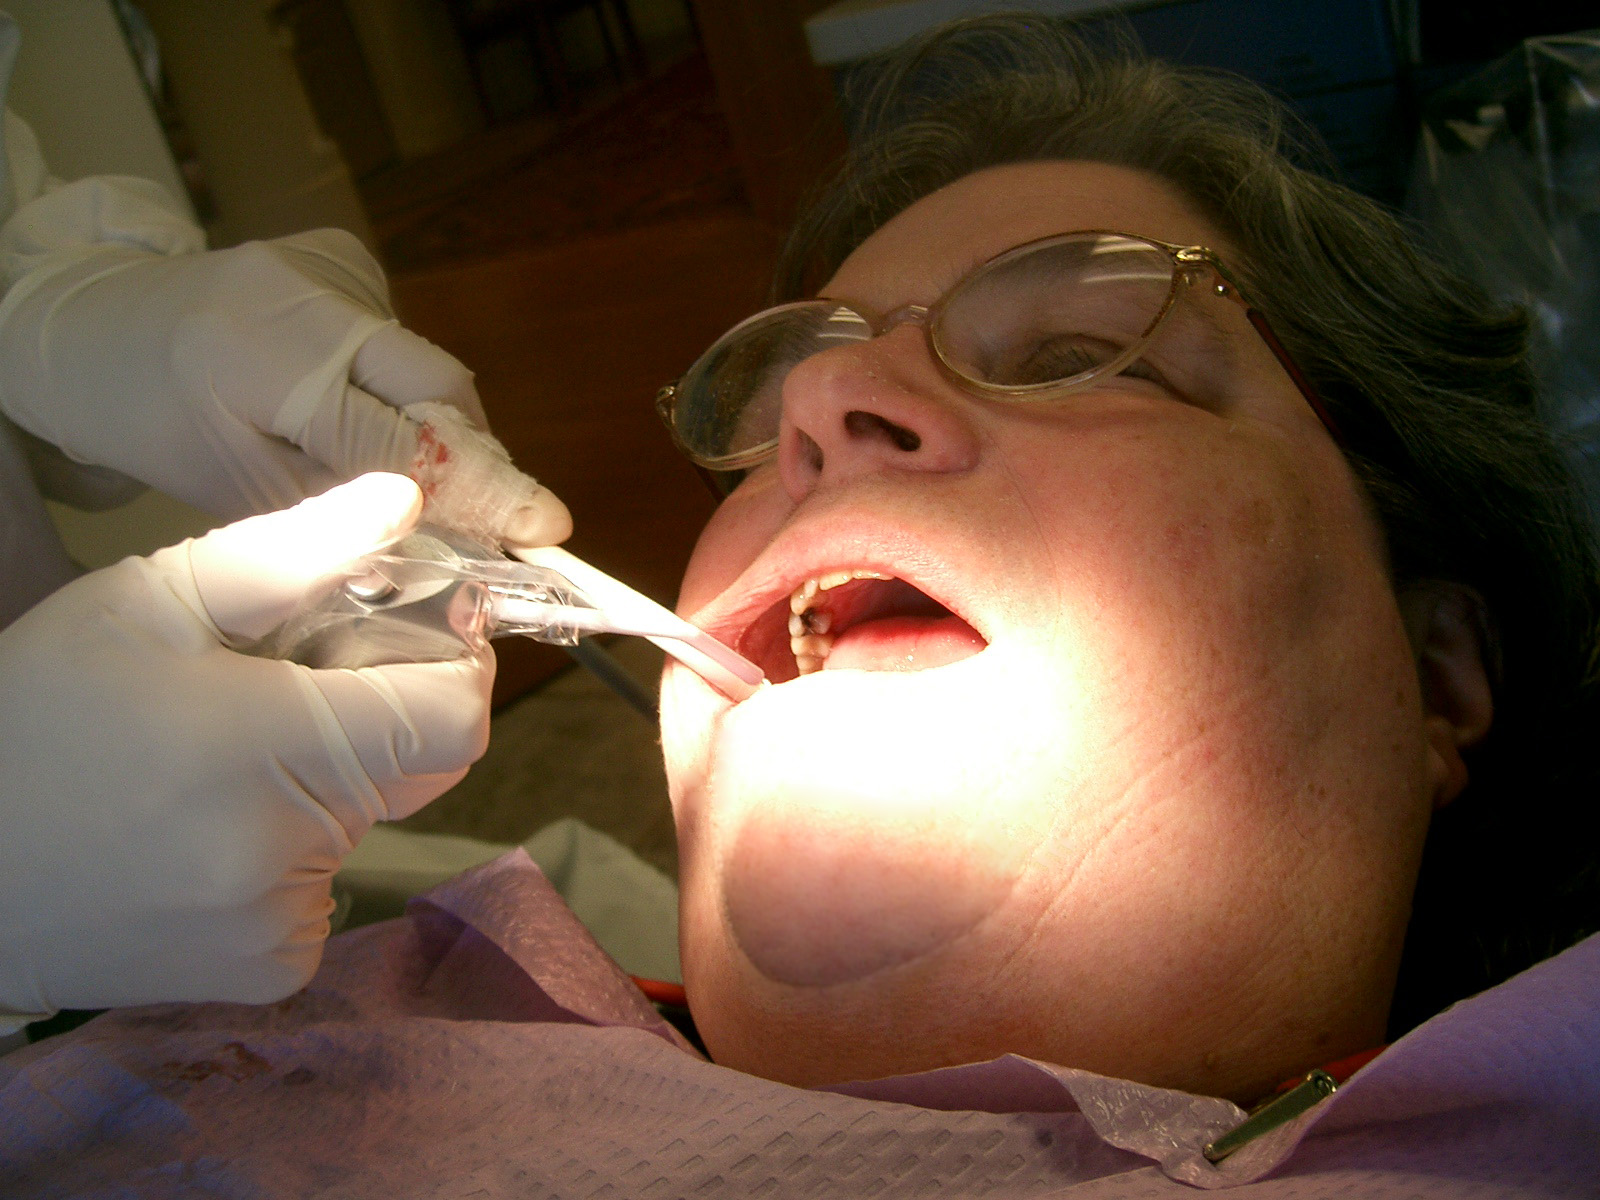 person getting dental work completed